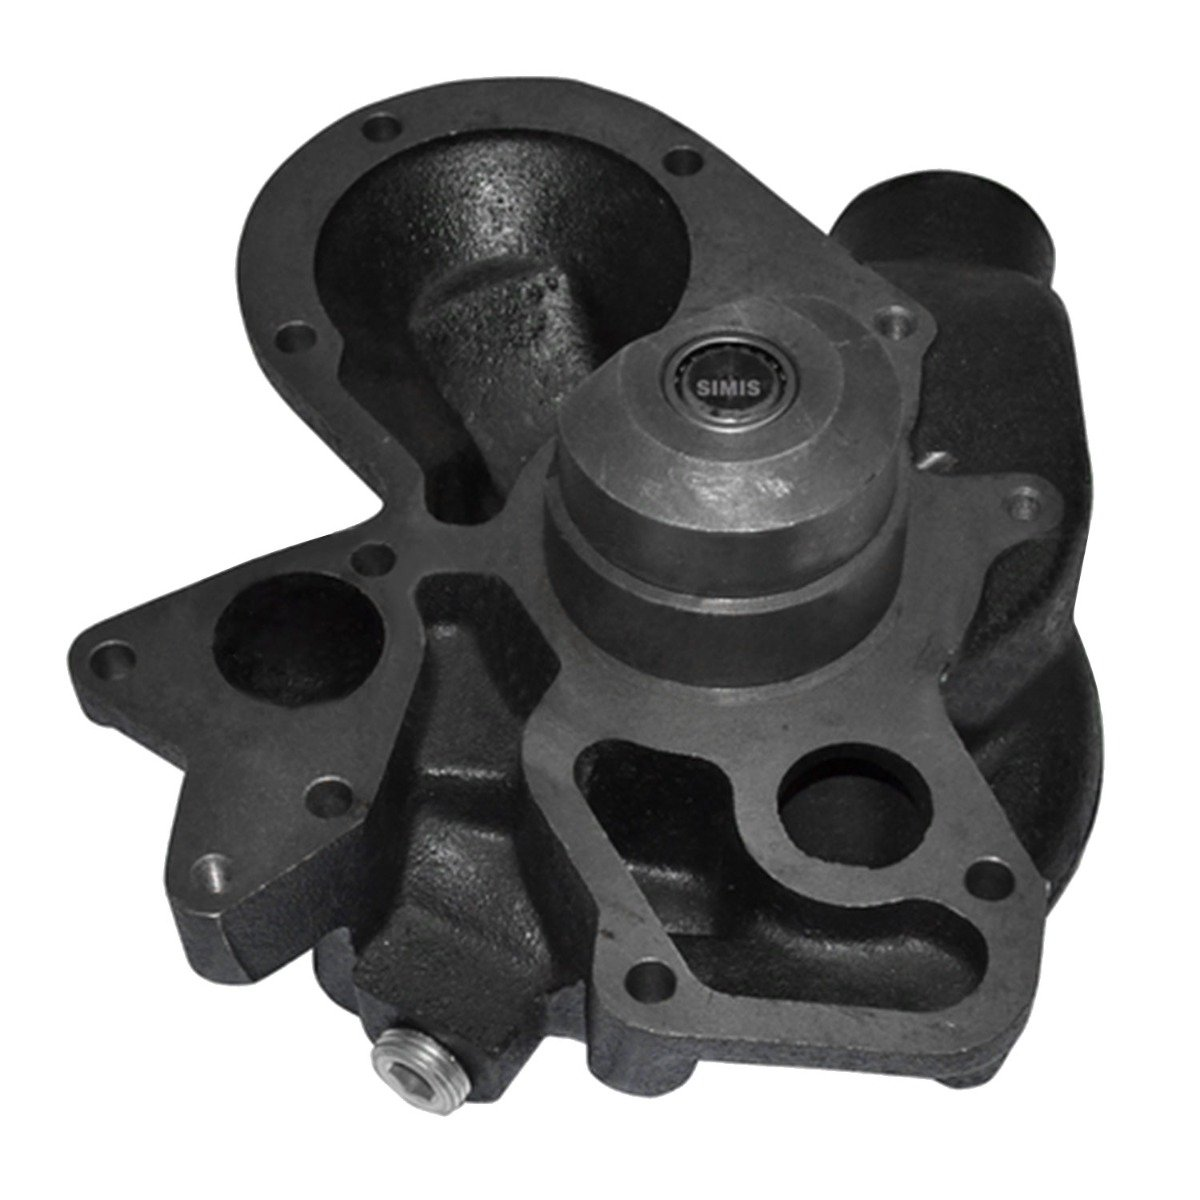 Water Pump 4131A046 Compatible with Perkins 1004.4/1004.4t V82